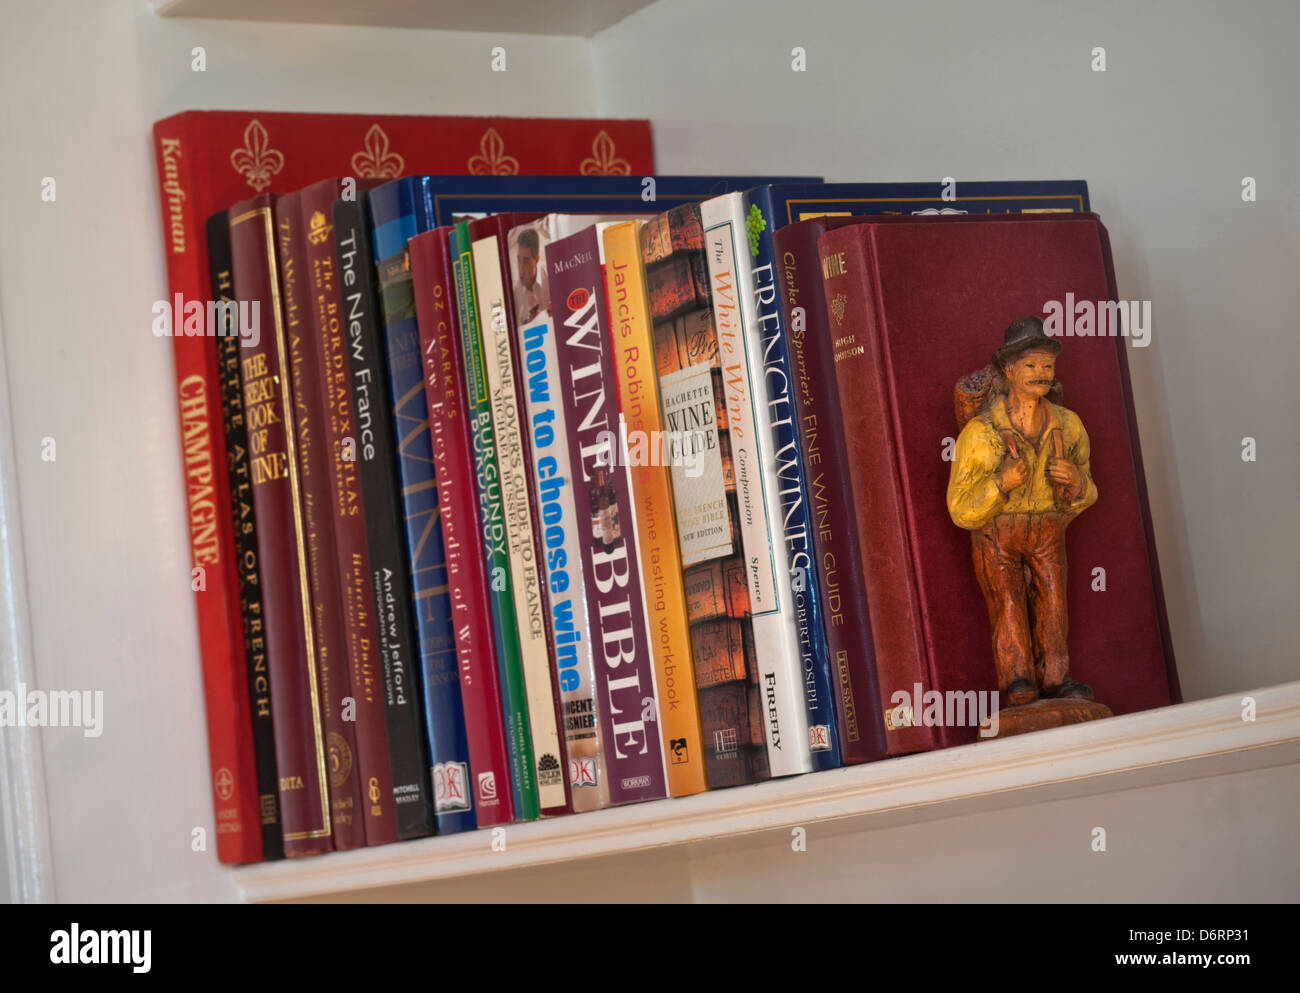 Variety of classic and contemporary wine reference books on bookshelf with grape harvester bookend figure - Stock Image